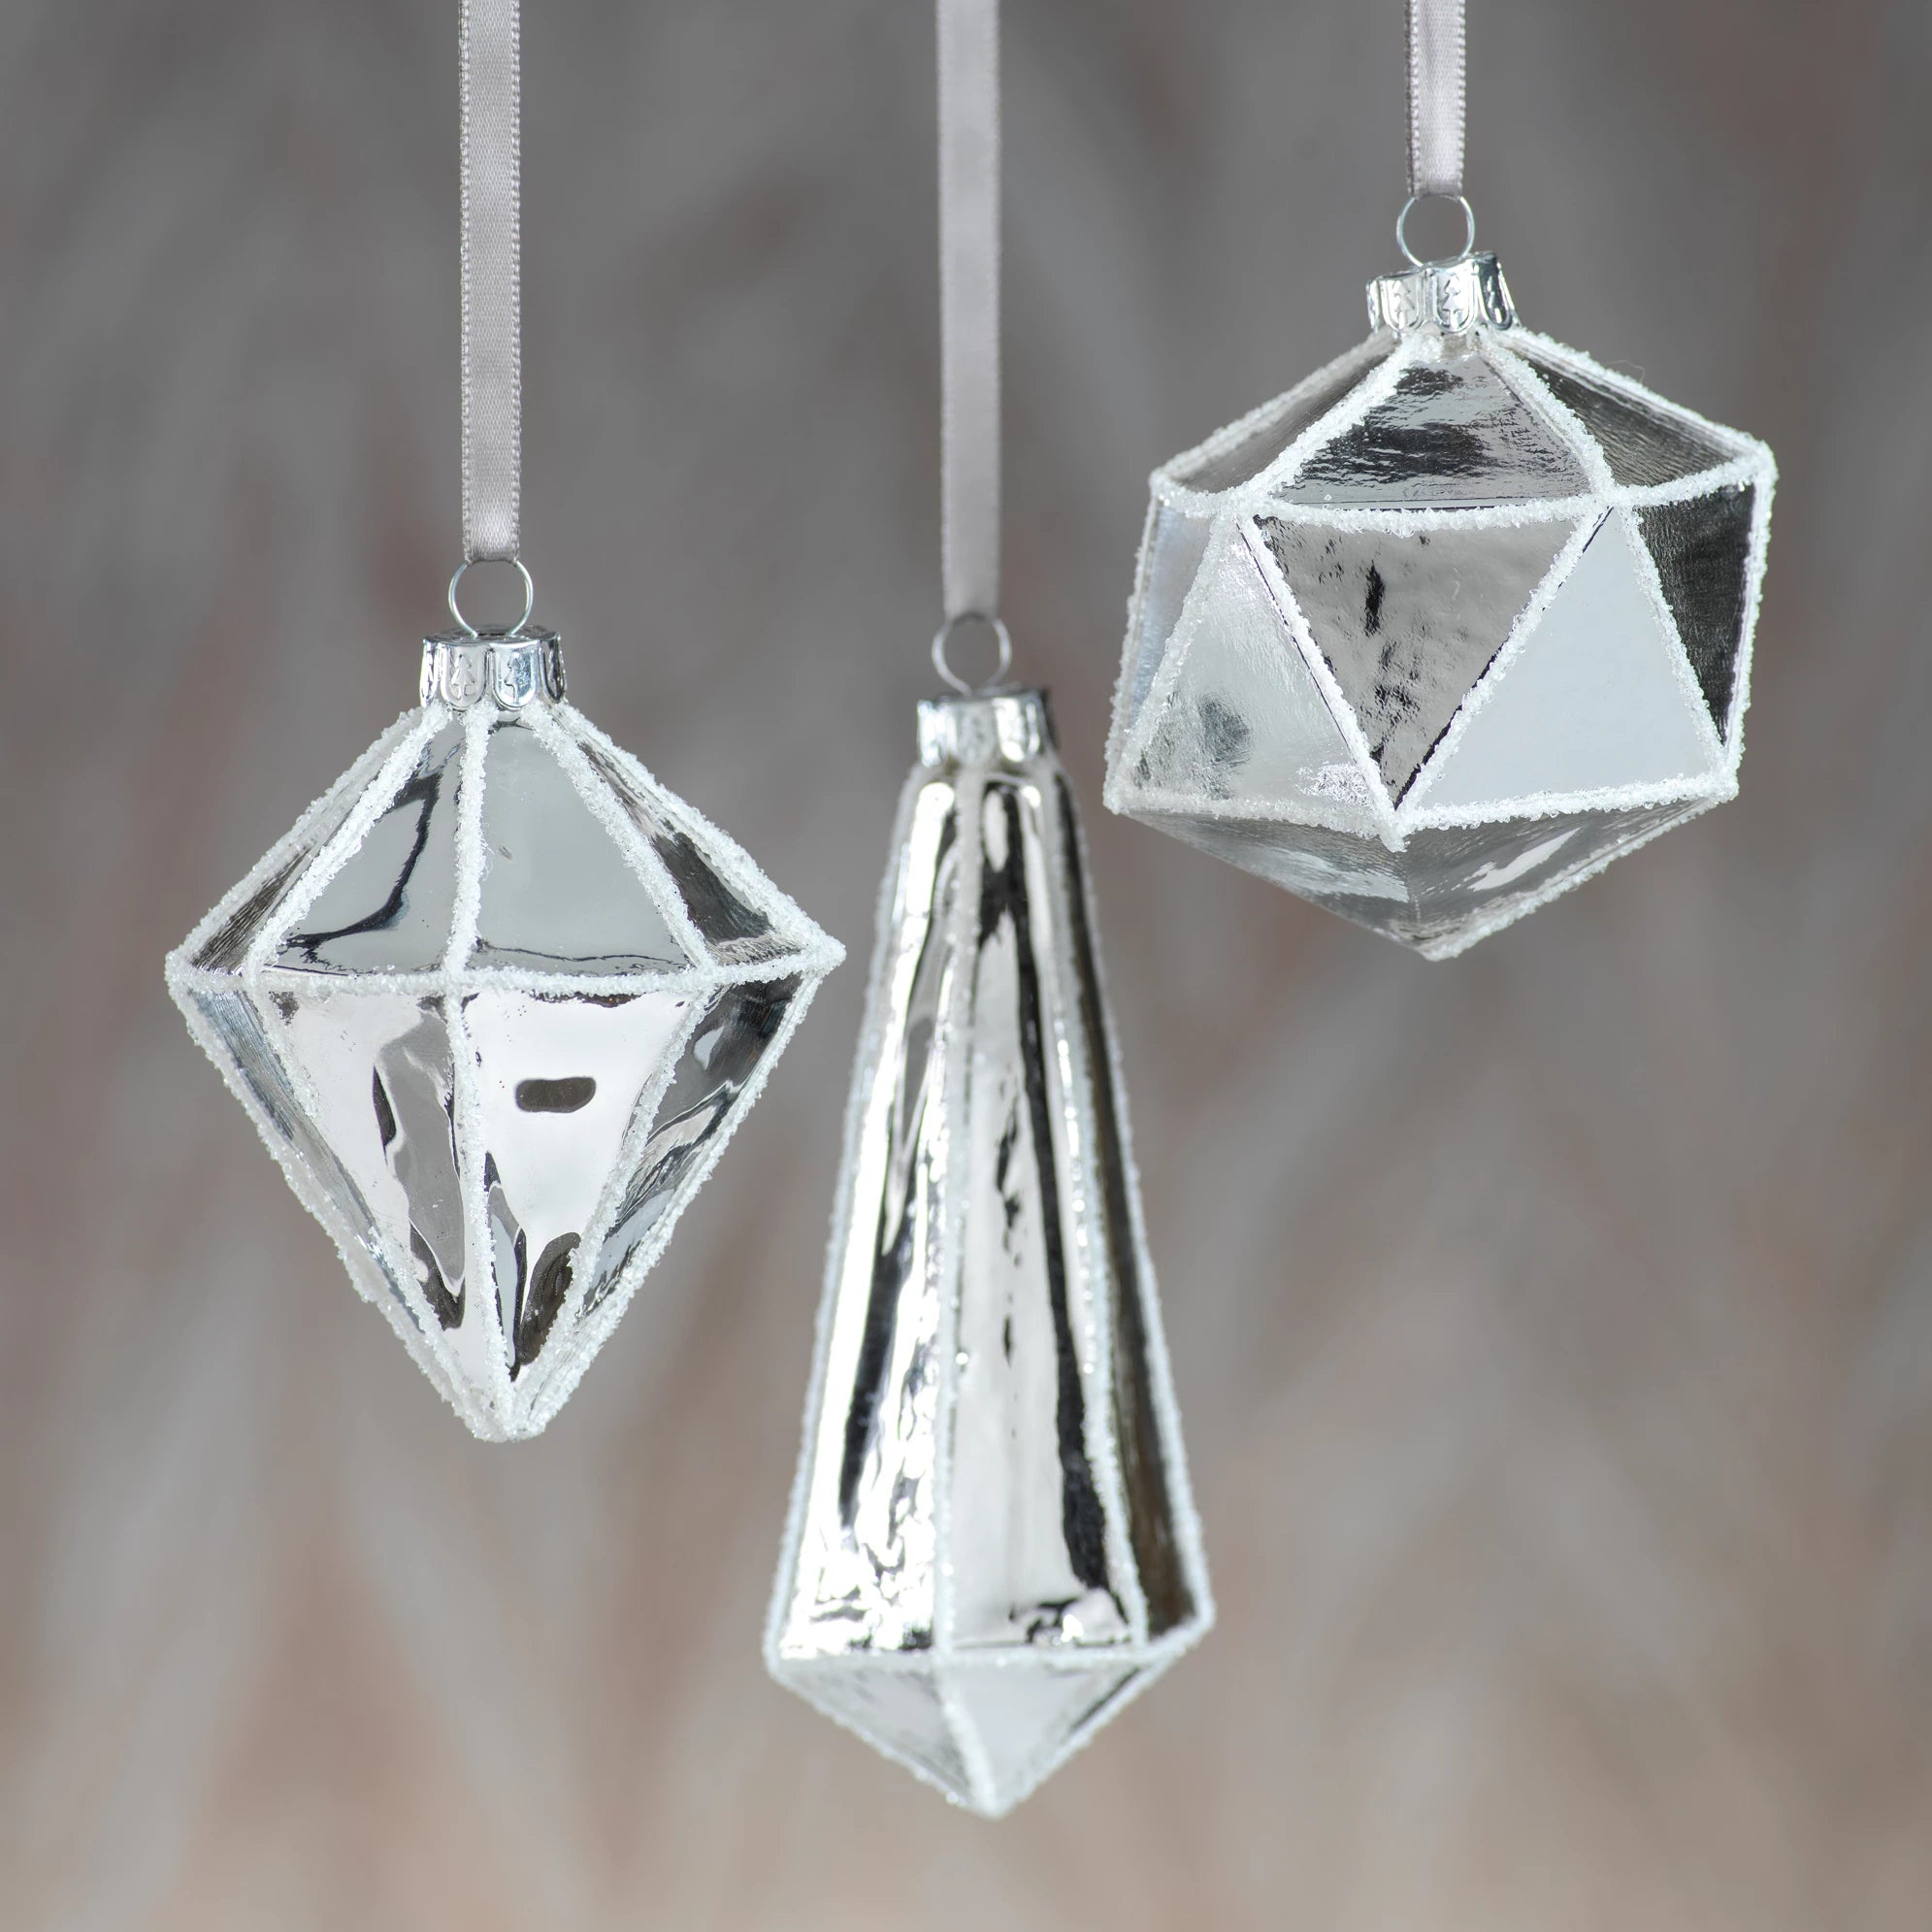 Metallic Silver Faceted Ornament - CARLYLE AVENUE